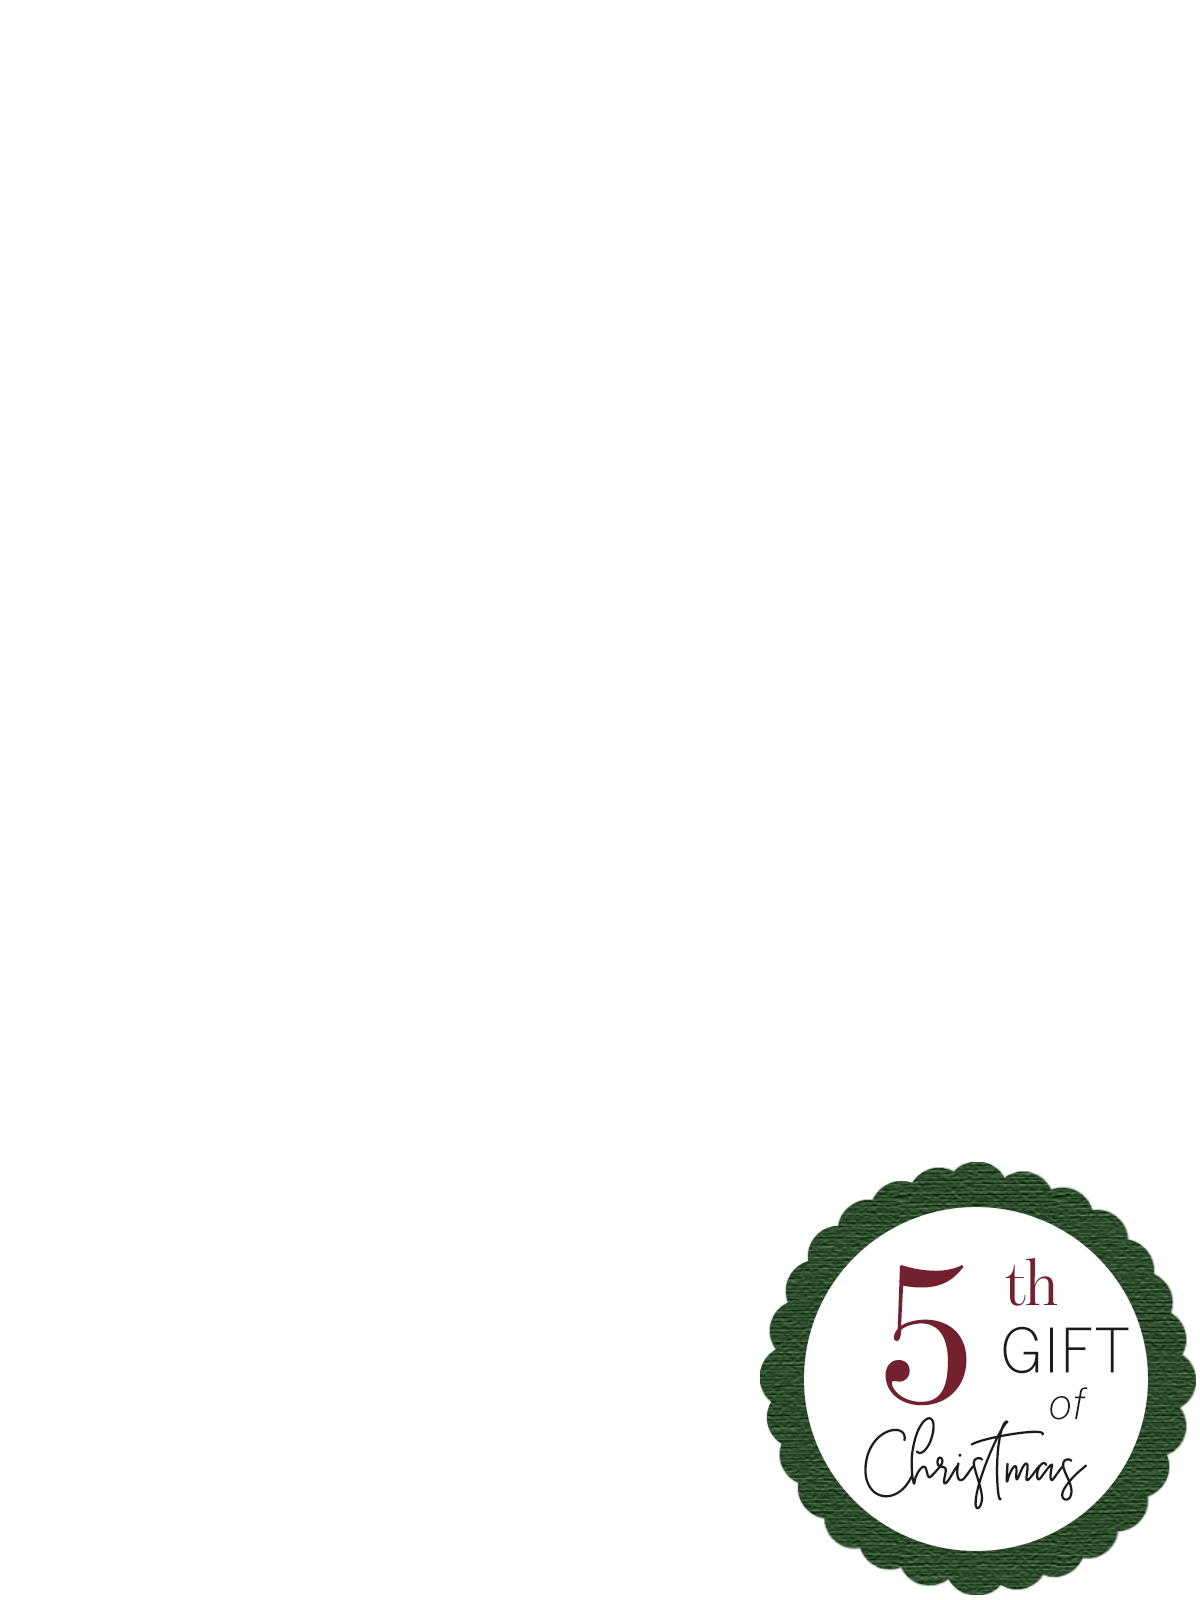 12GiftsOfChristmas_PromoFlags_5th.png